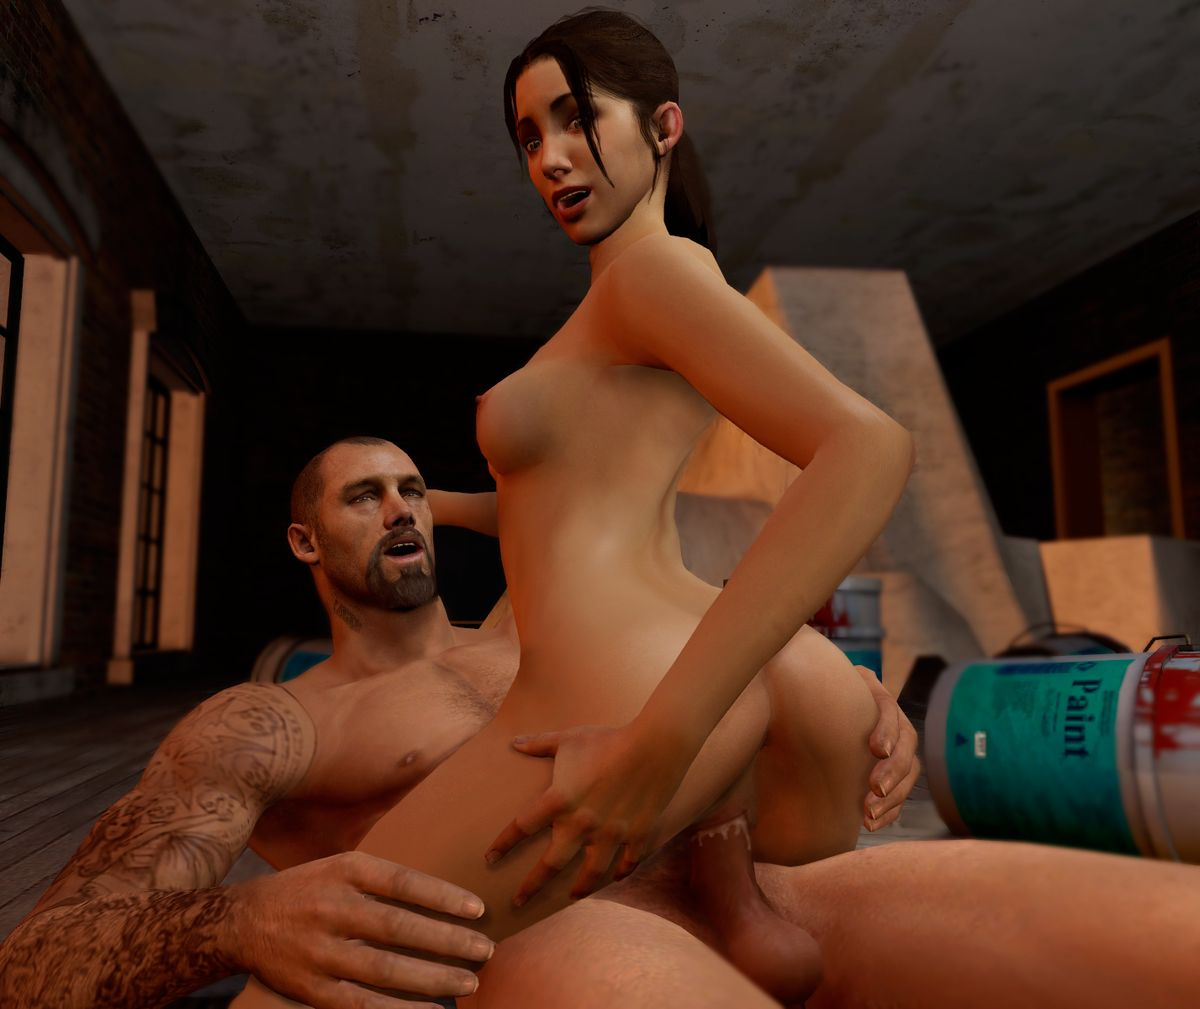 Naked zoey sex l4d xxx videos